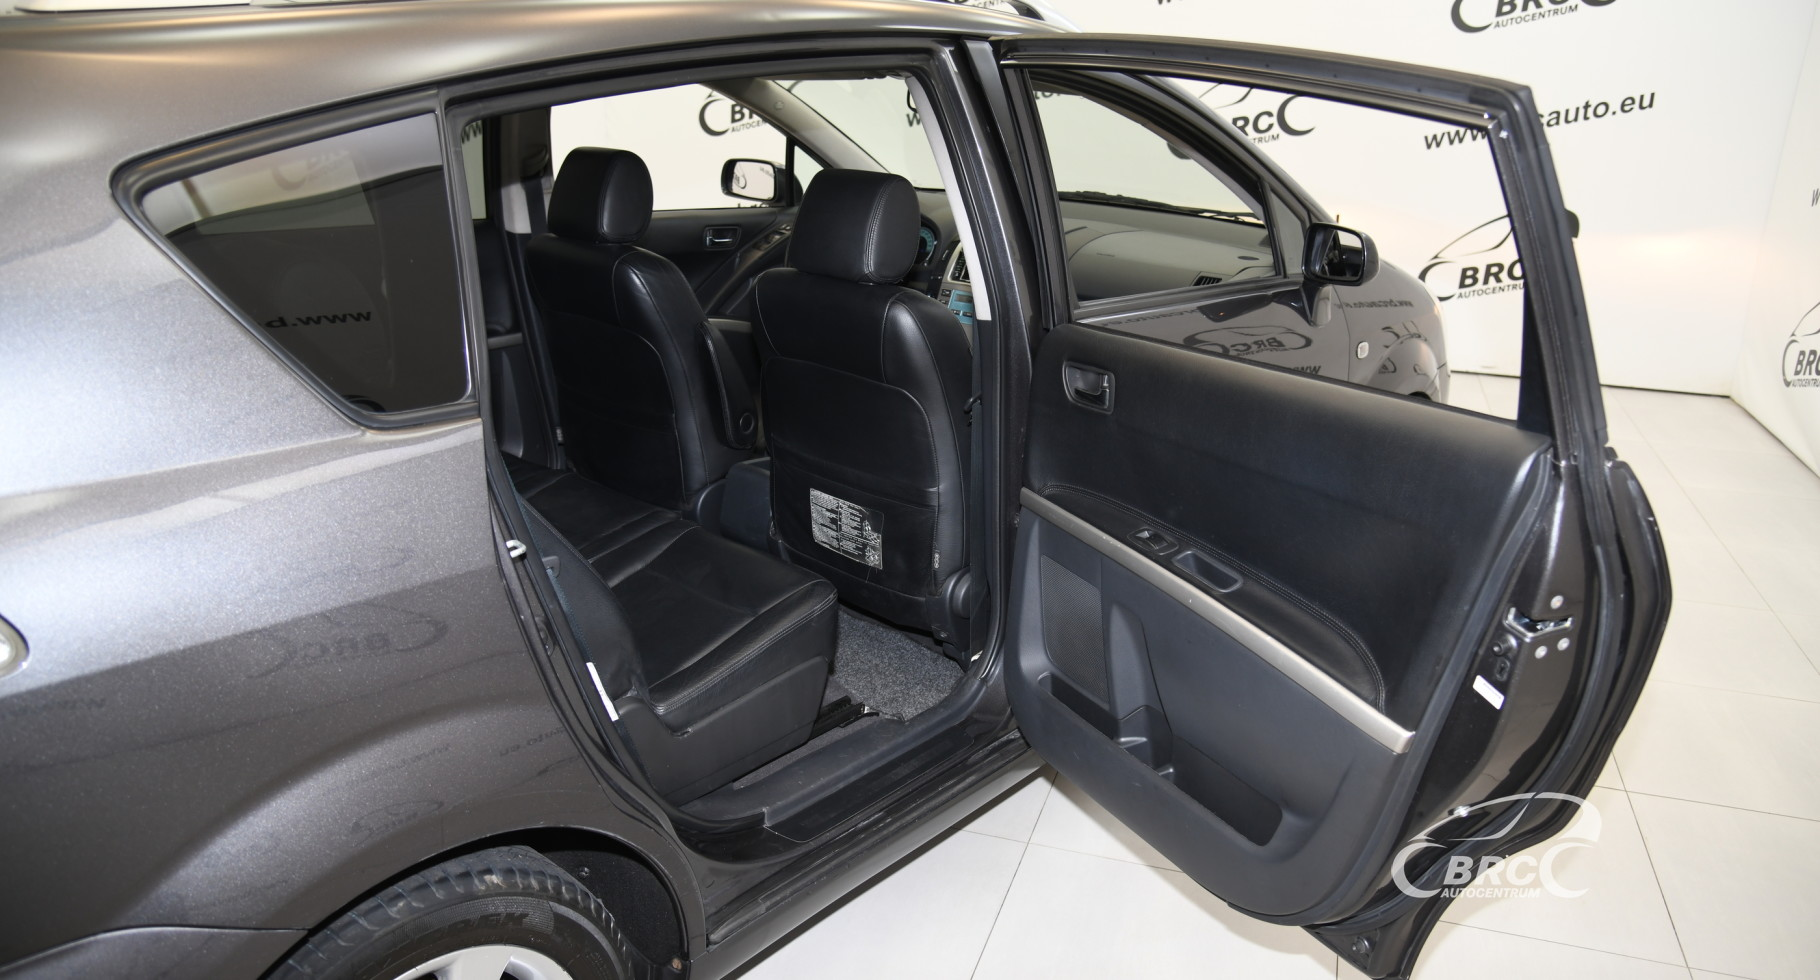 Toyota Corolla Verso 2.2 D4-D Sol Type 7-Seats